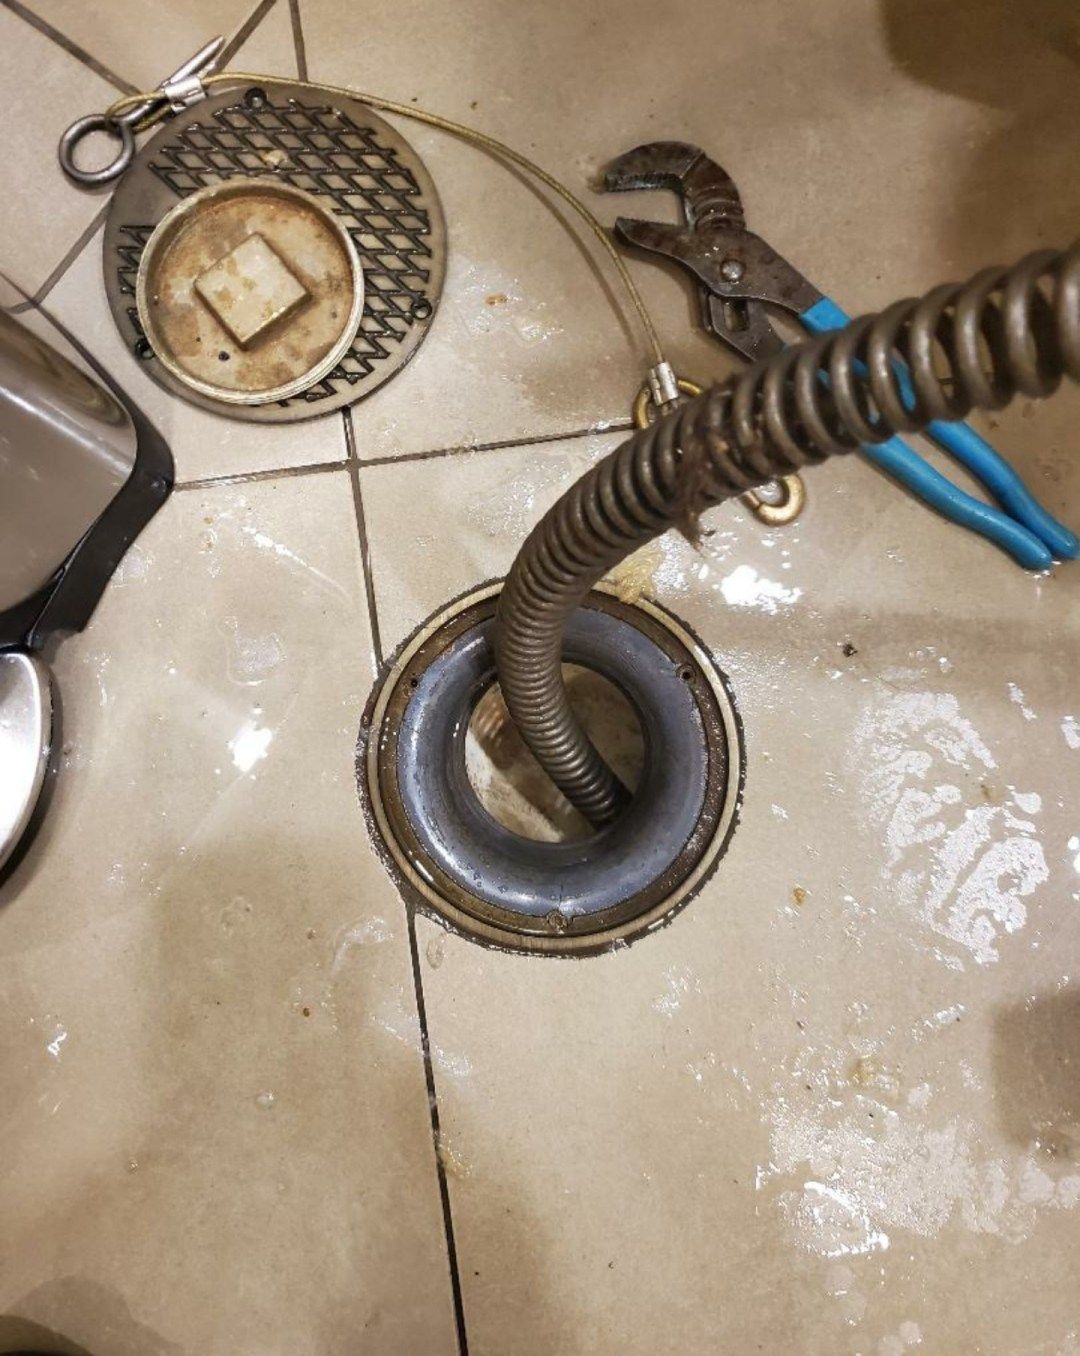 NORTHERN VIRGINIA PLUMBING SERVICES 8 1 - What